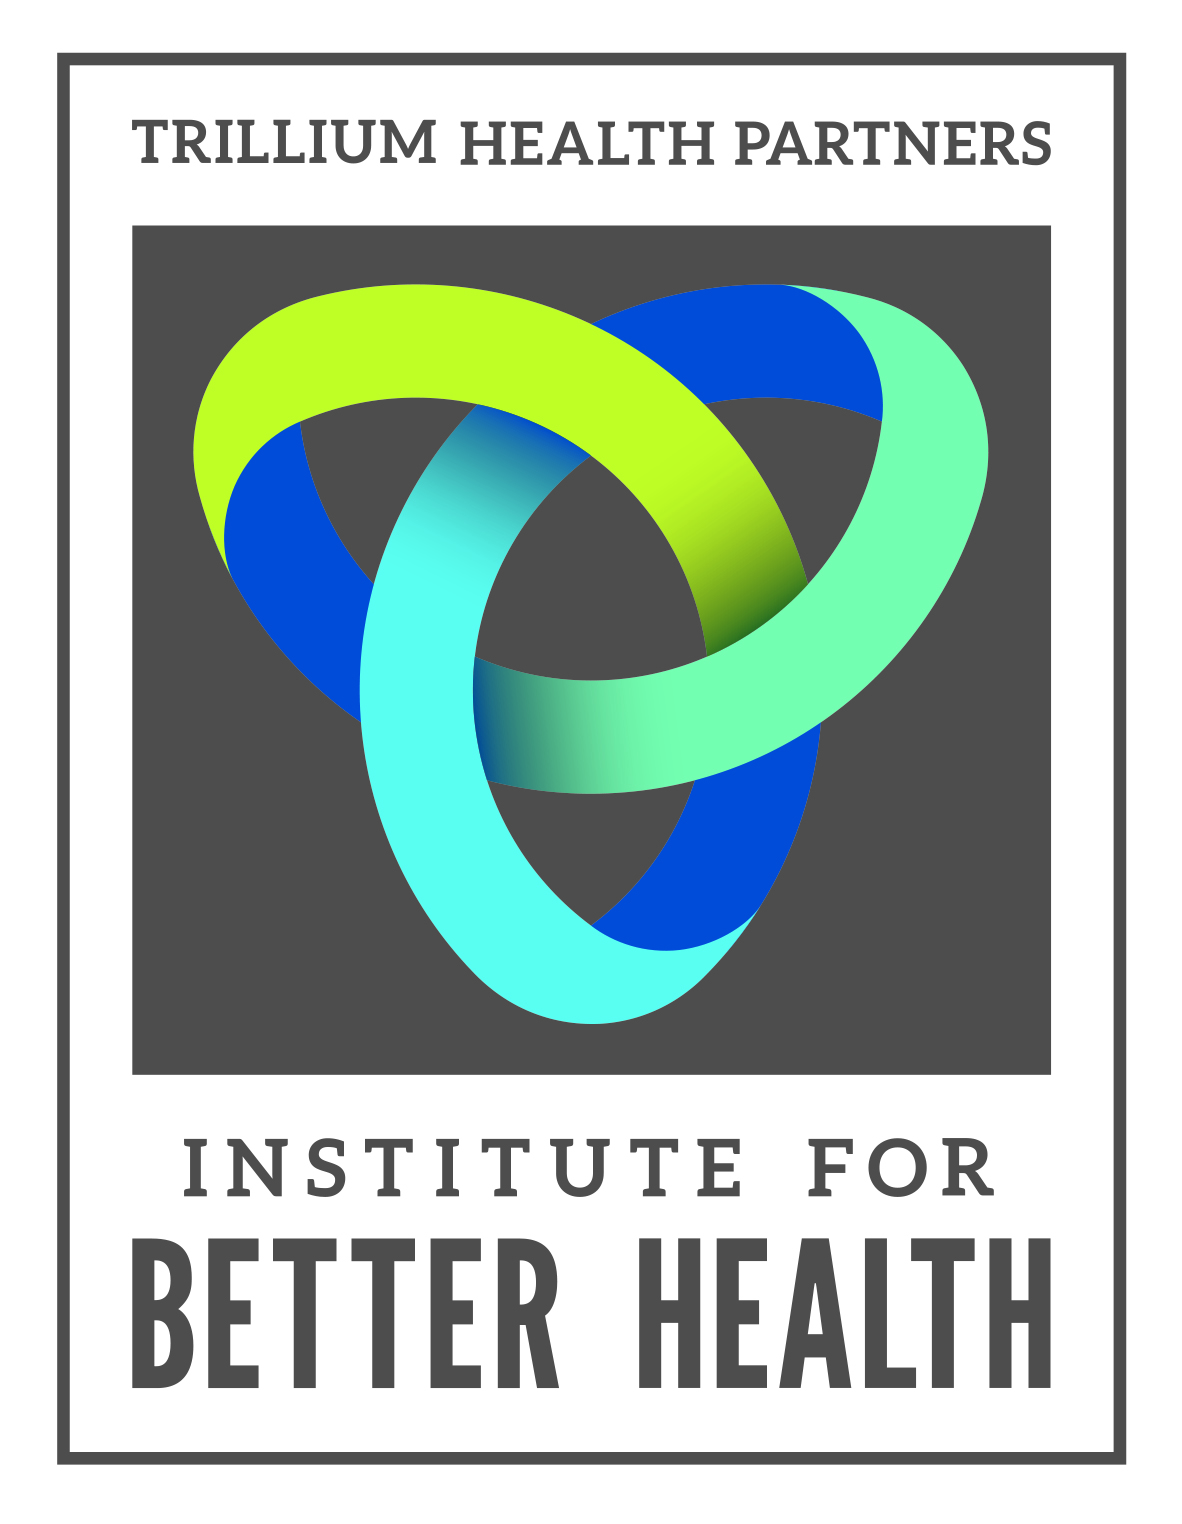 Institute for Better Health